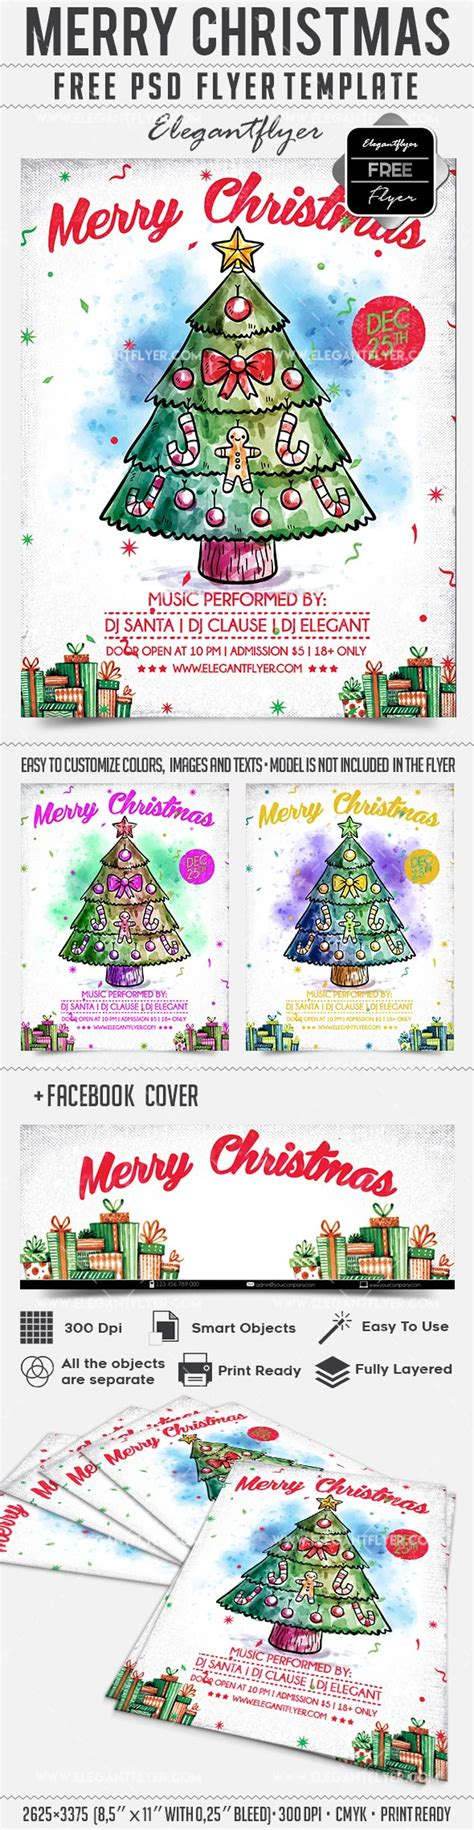 christmas tree flyer template free psd flyer design 2016 free flyer templates christmas